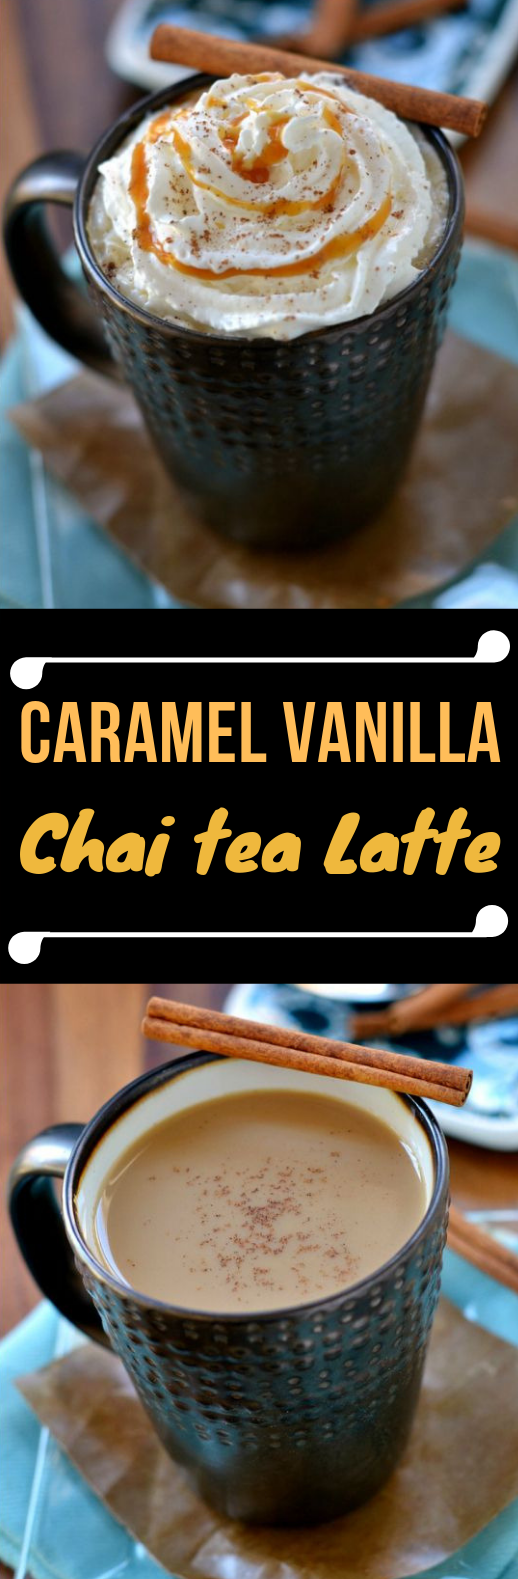 CARAMEL VANILLA CHAI TEA LATTE #Drink #Smoothie